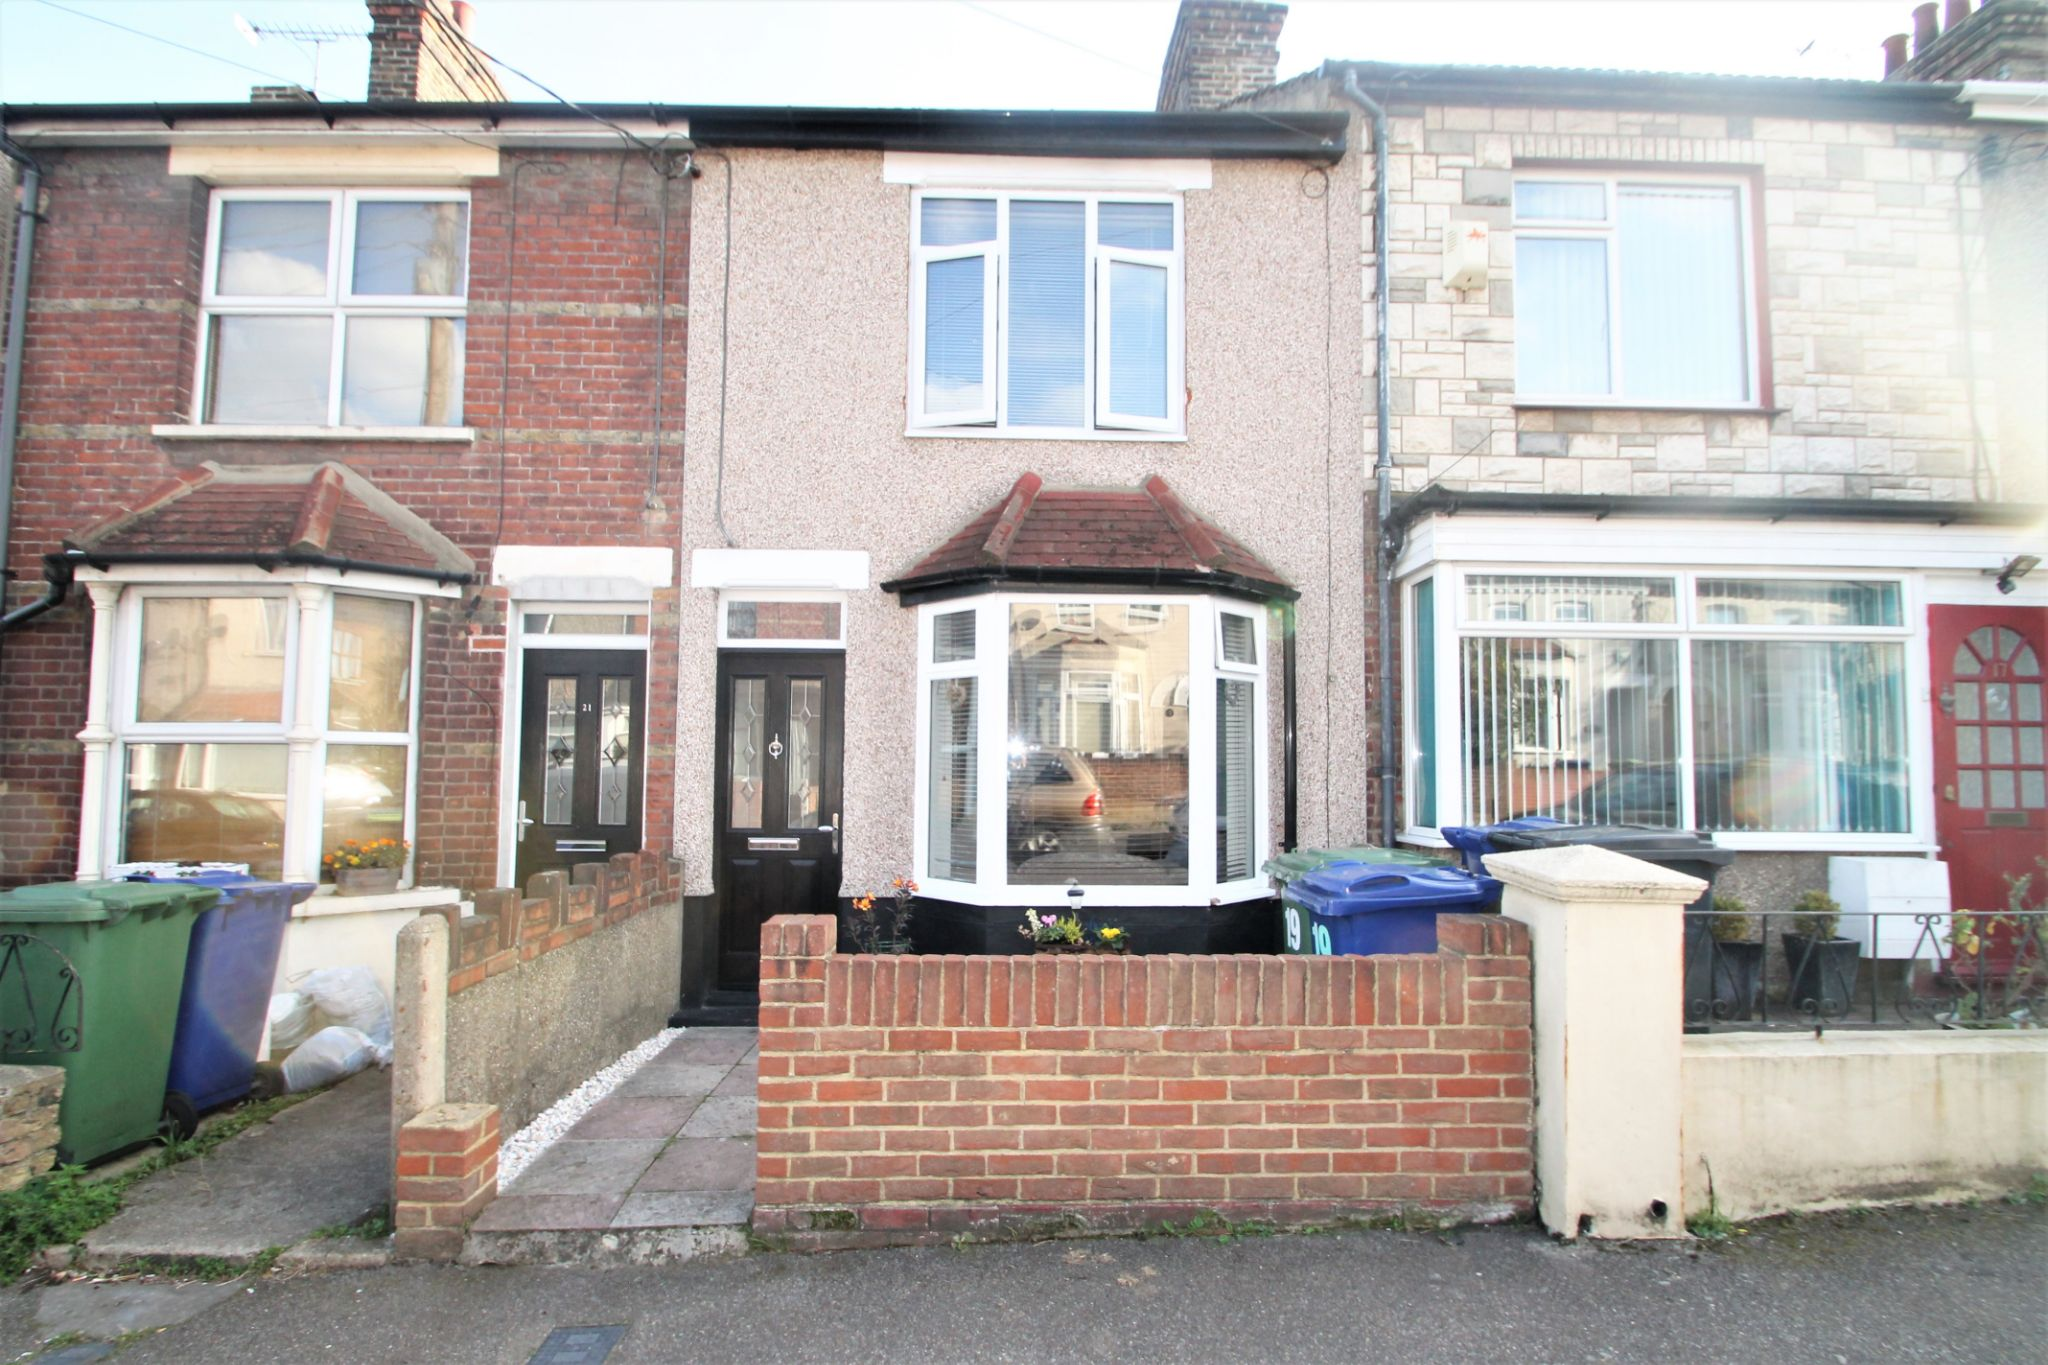 3 Bedroom Mid Terraced House For Sale - Exterior